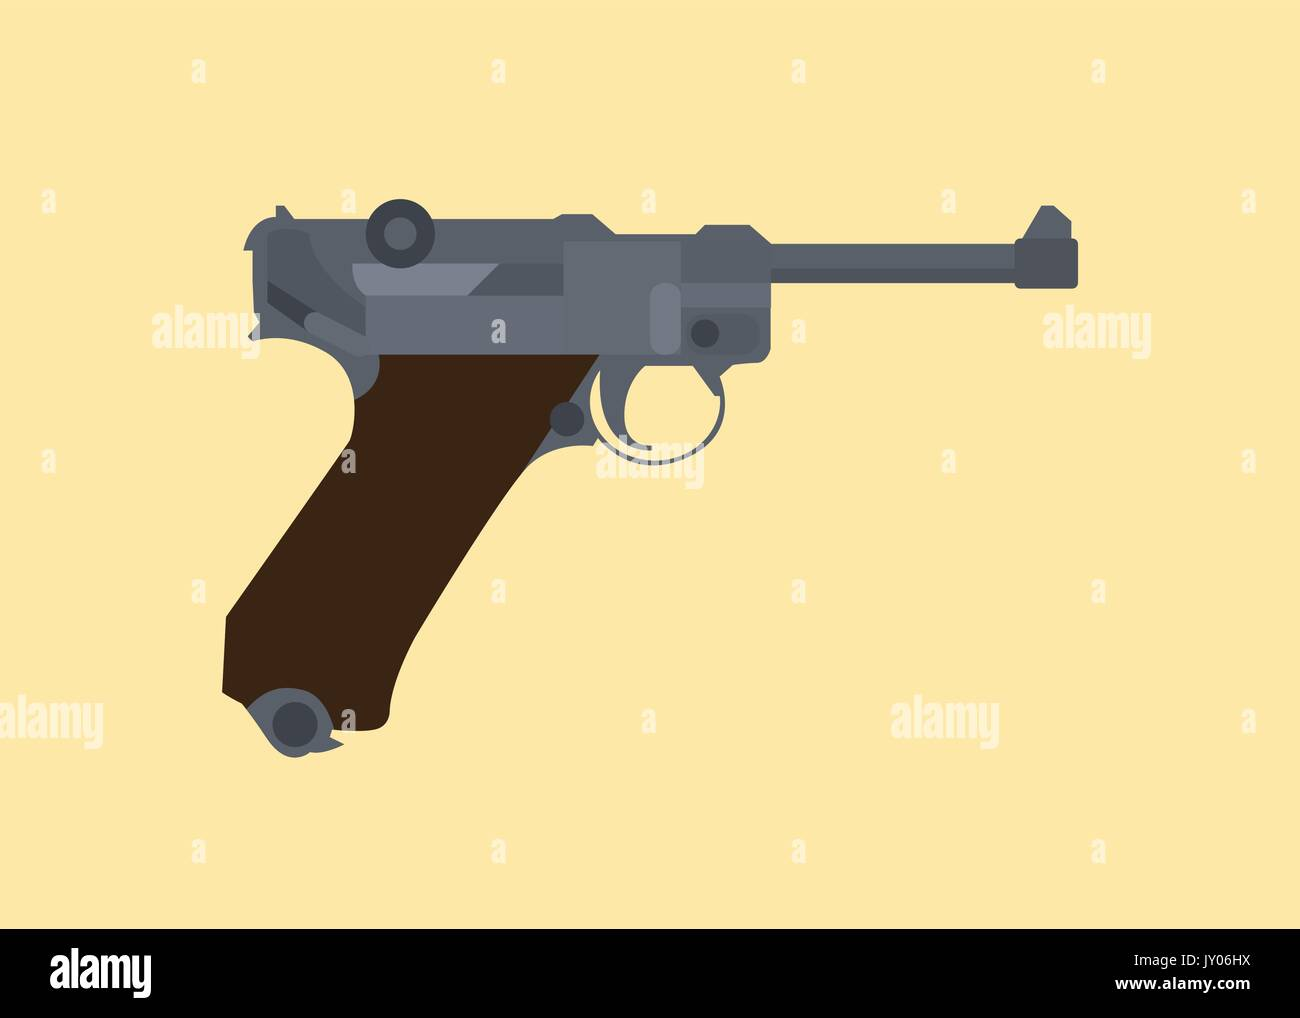 luger german ww2 world war 2 iconic pistols isolated vector - Stock Vector